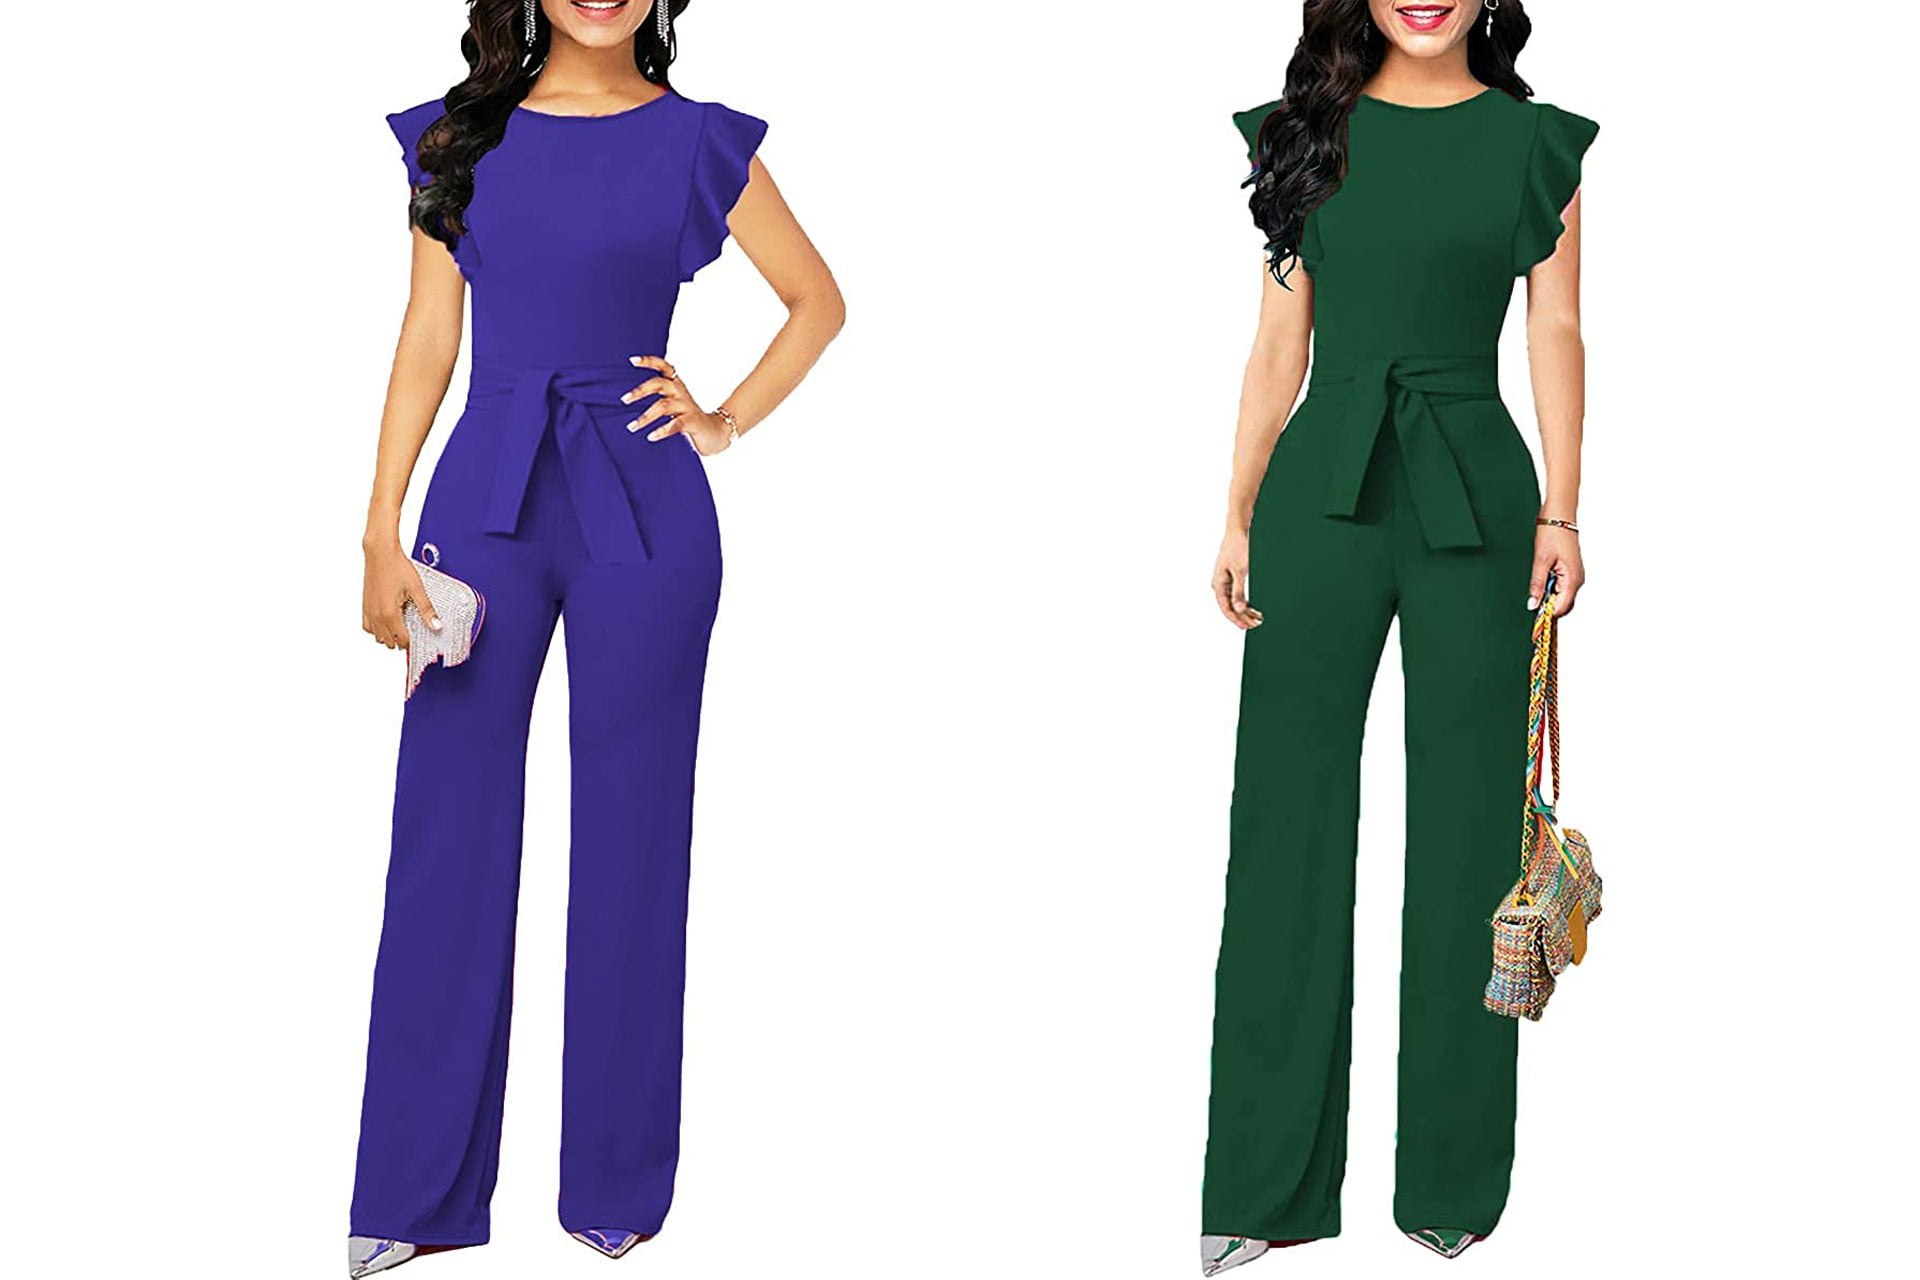 engagement party dress ideas: Soinku Women's Elegant Wide Leg Jumpsuit Ruffle High Waist Romper Long Jumpsuits with Belt